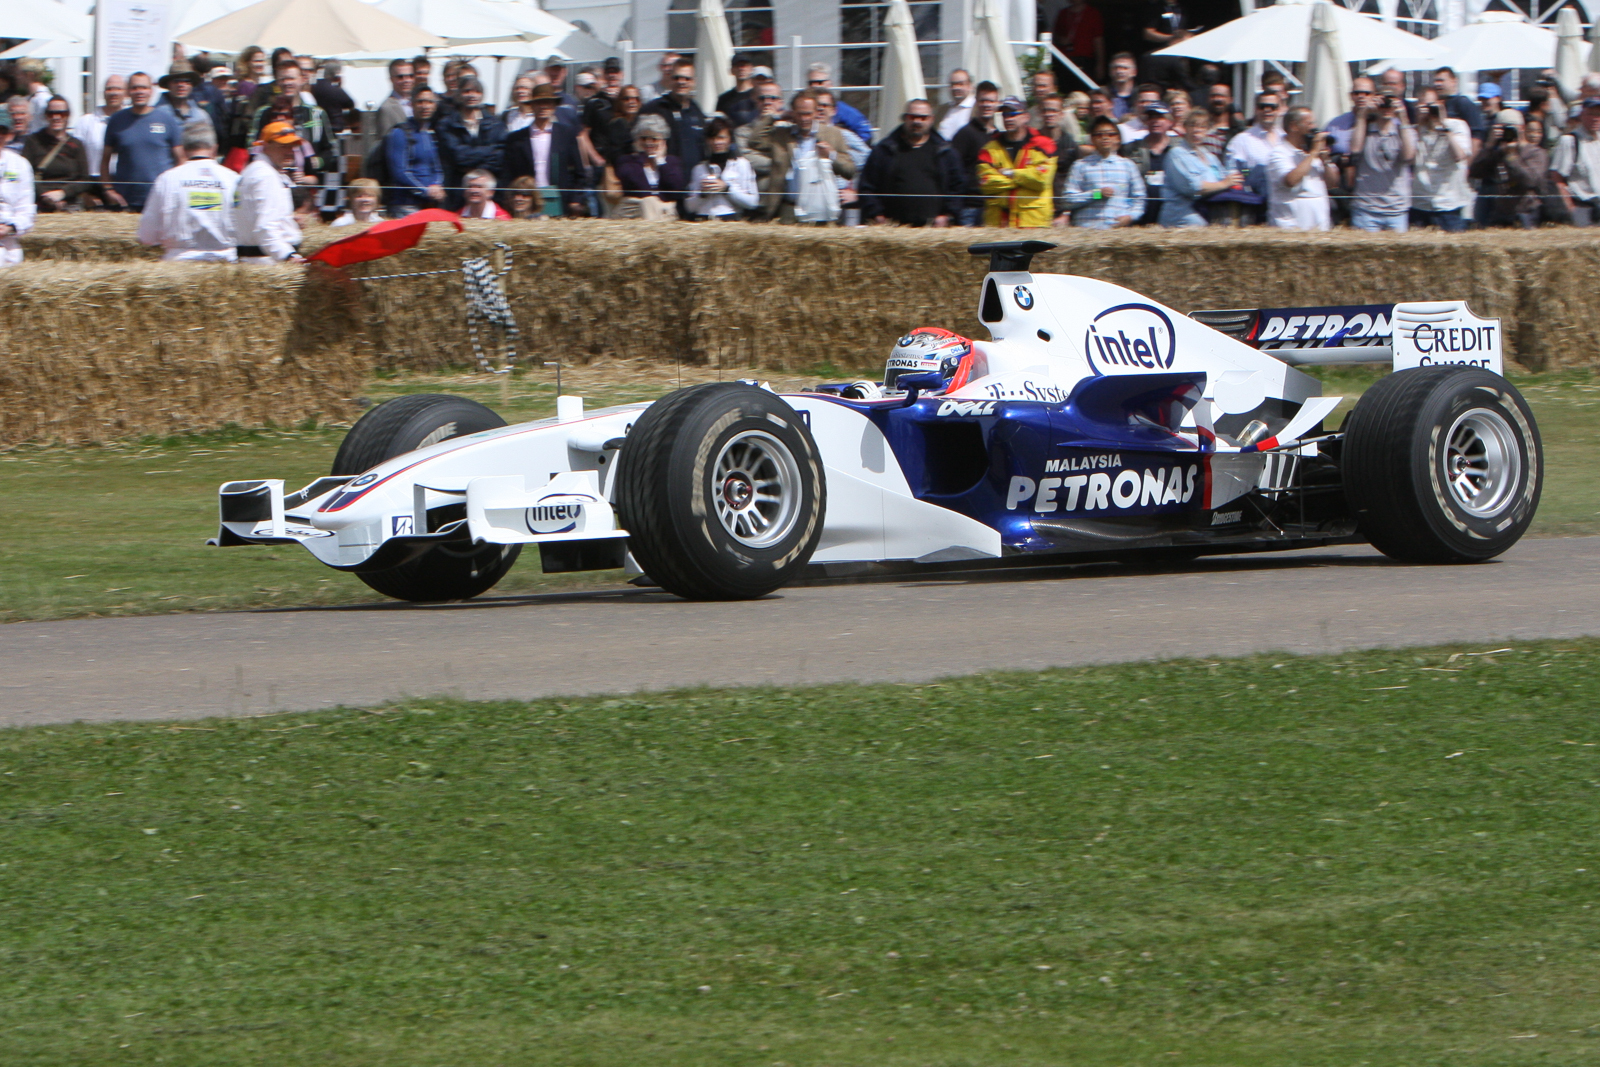 20080711 - Goodwood Festival of Speed -080711 -001